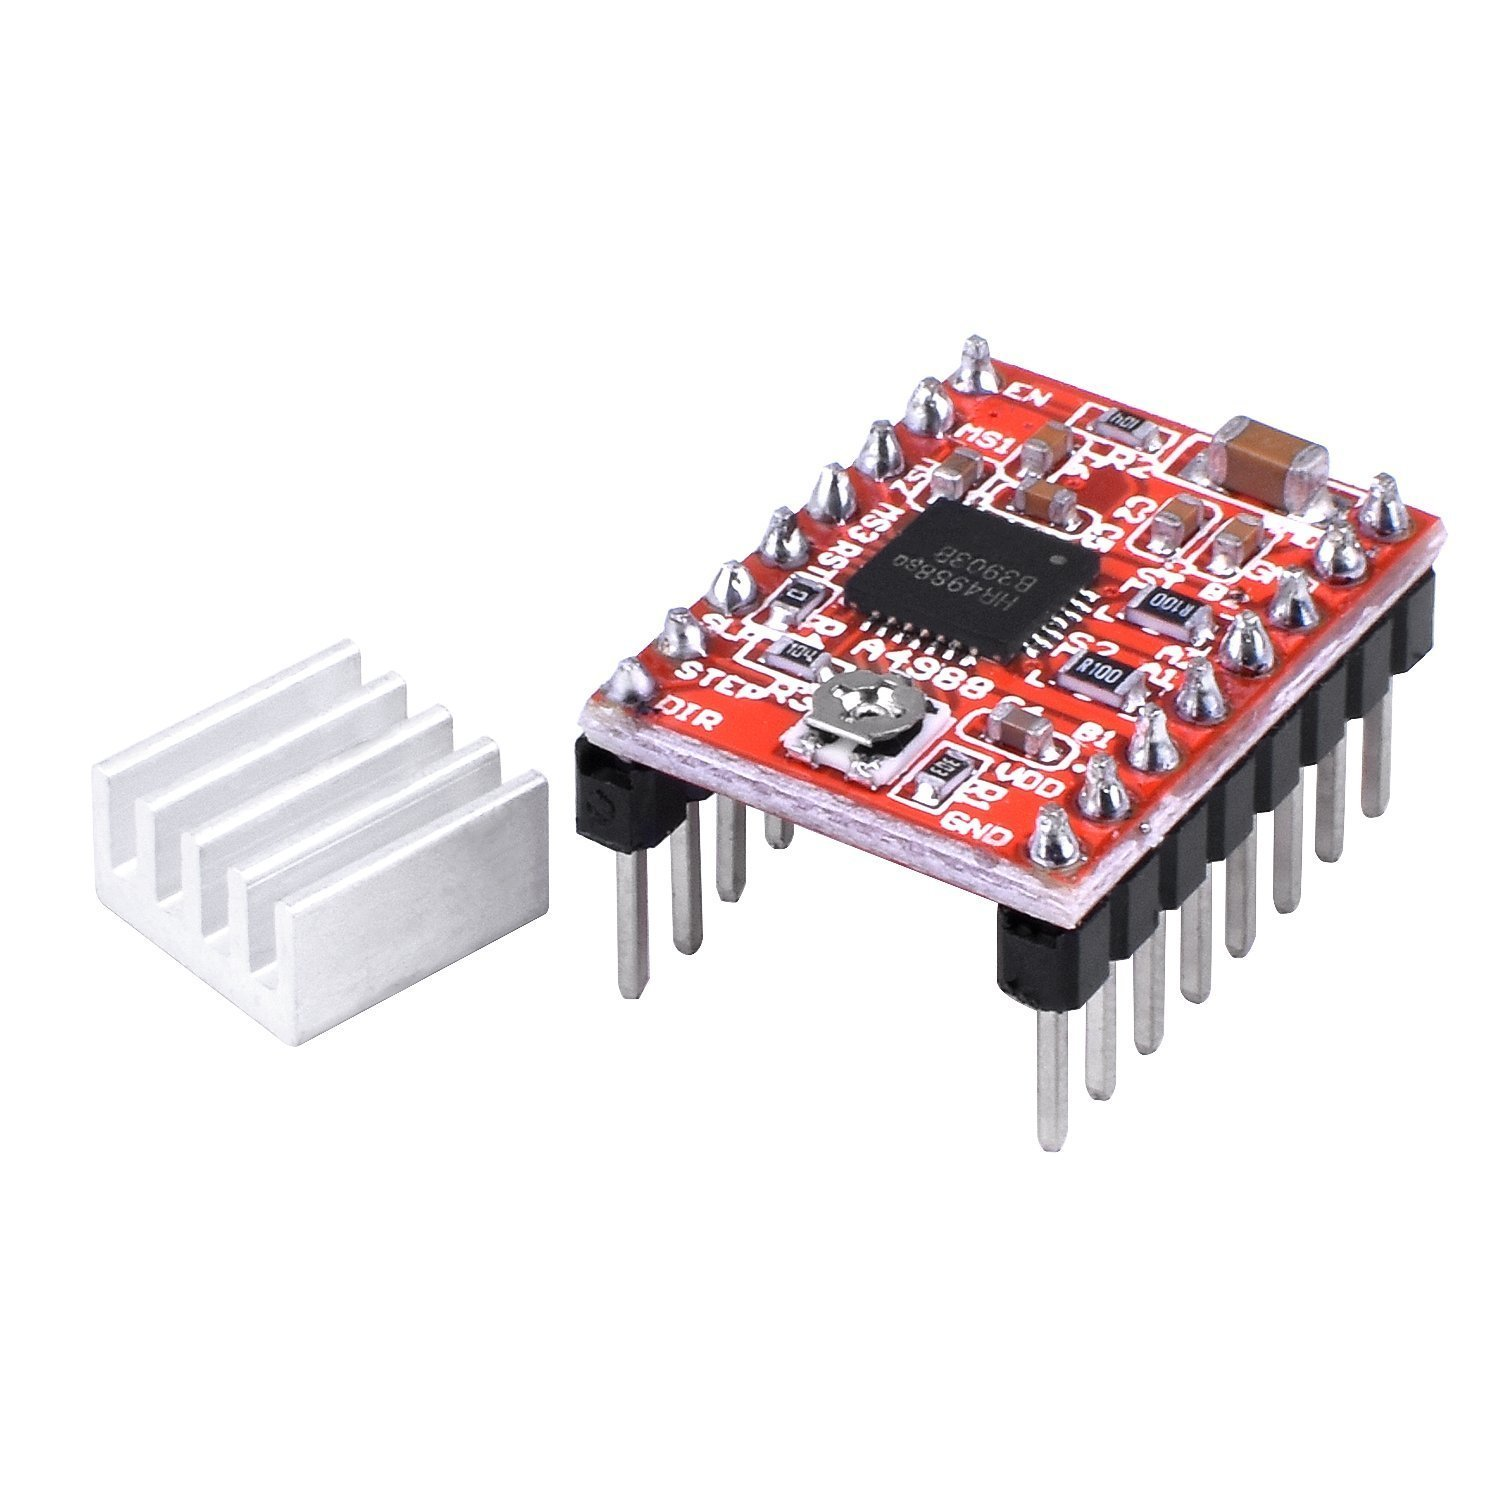 A4988 Stepstick Stepper Motor Driver Module + Heat Sink for 3d Printer Reprap